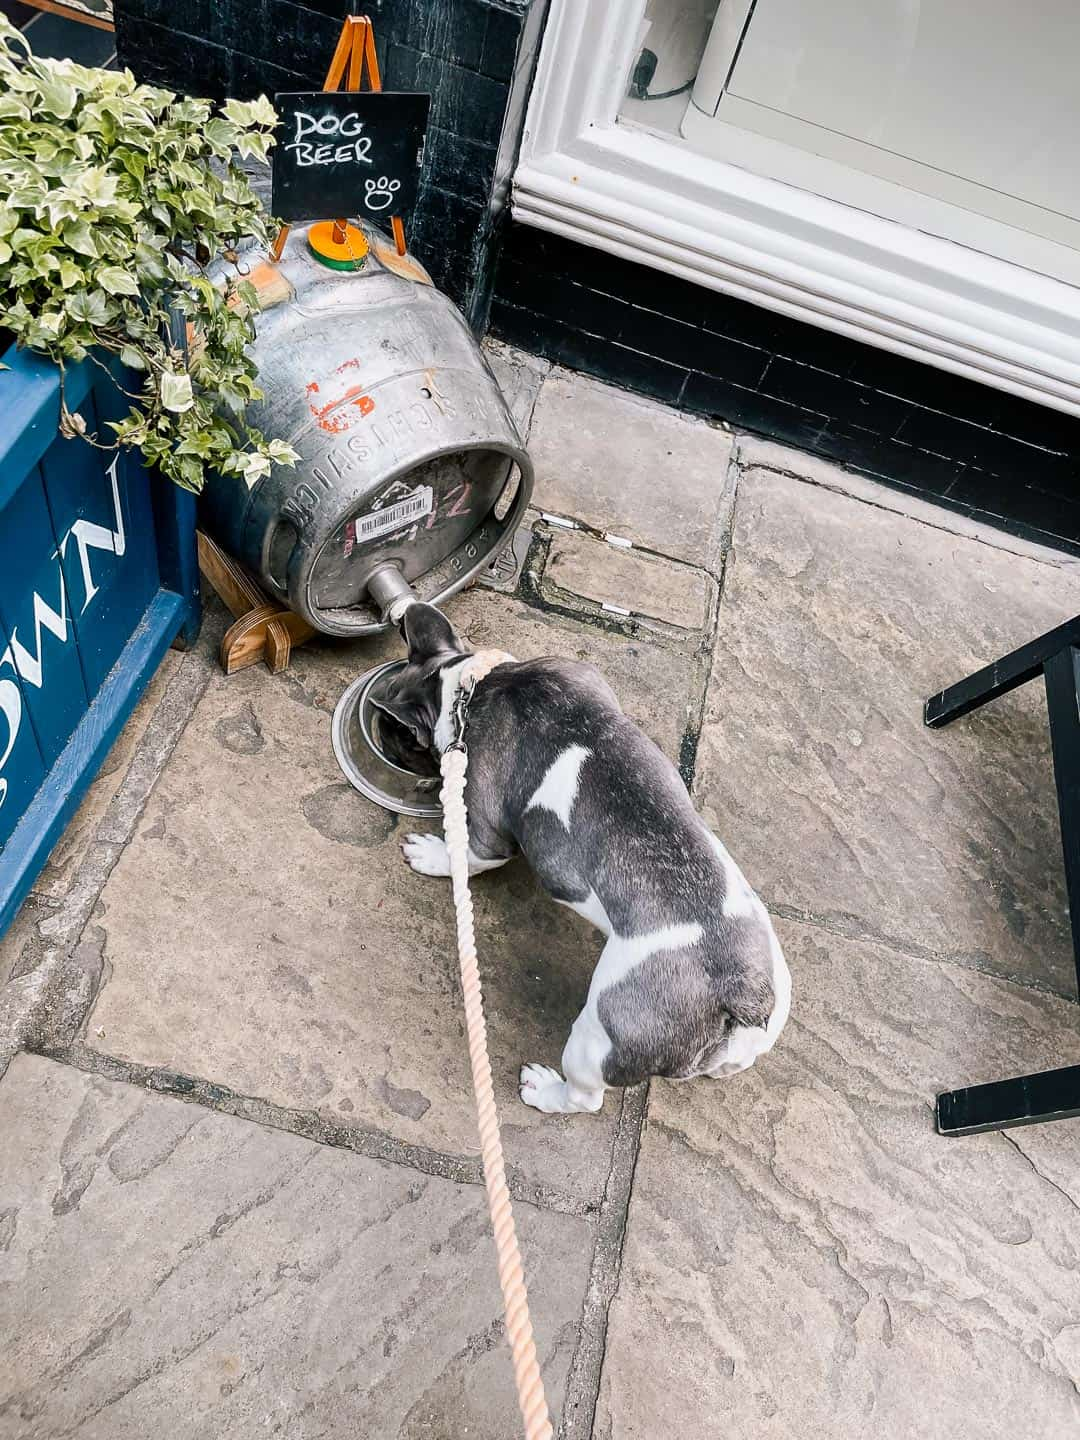 Refueling at Doggy Beer Station at The Angel and Crown Richmond